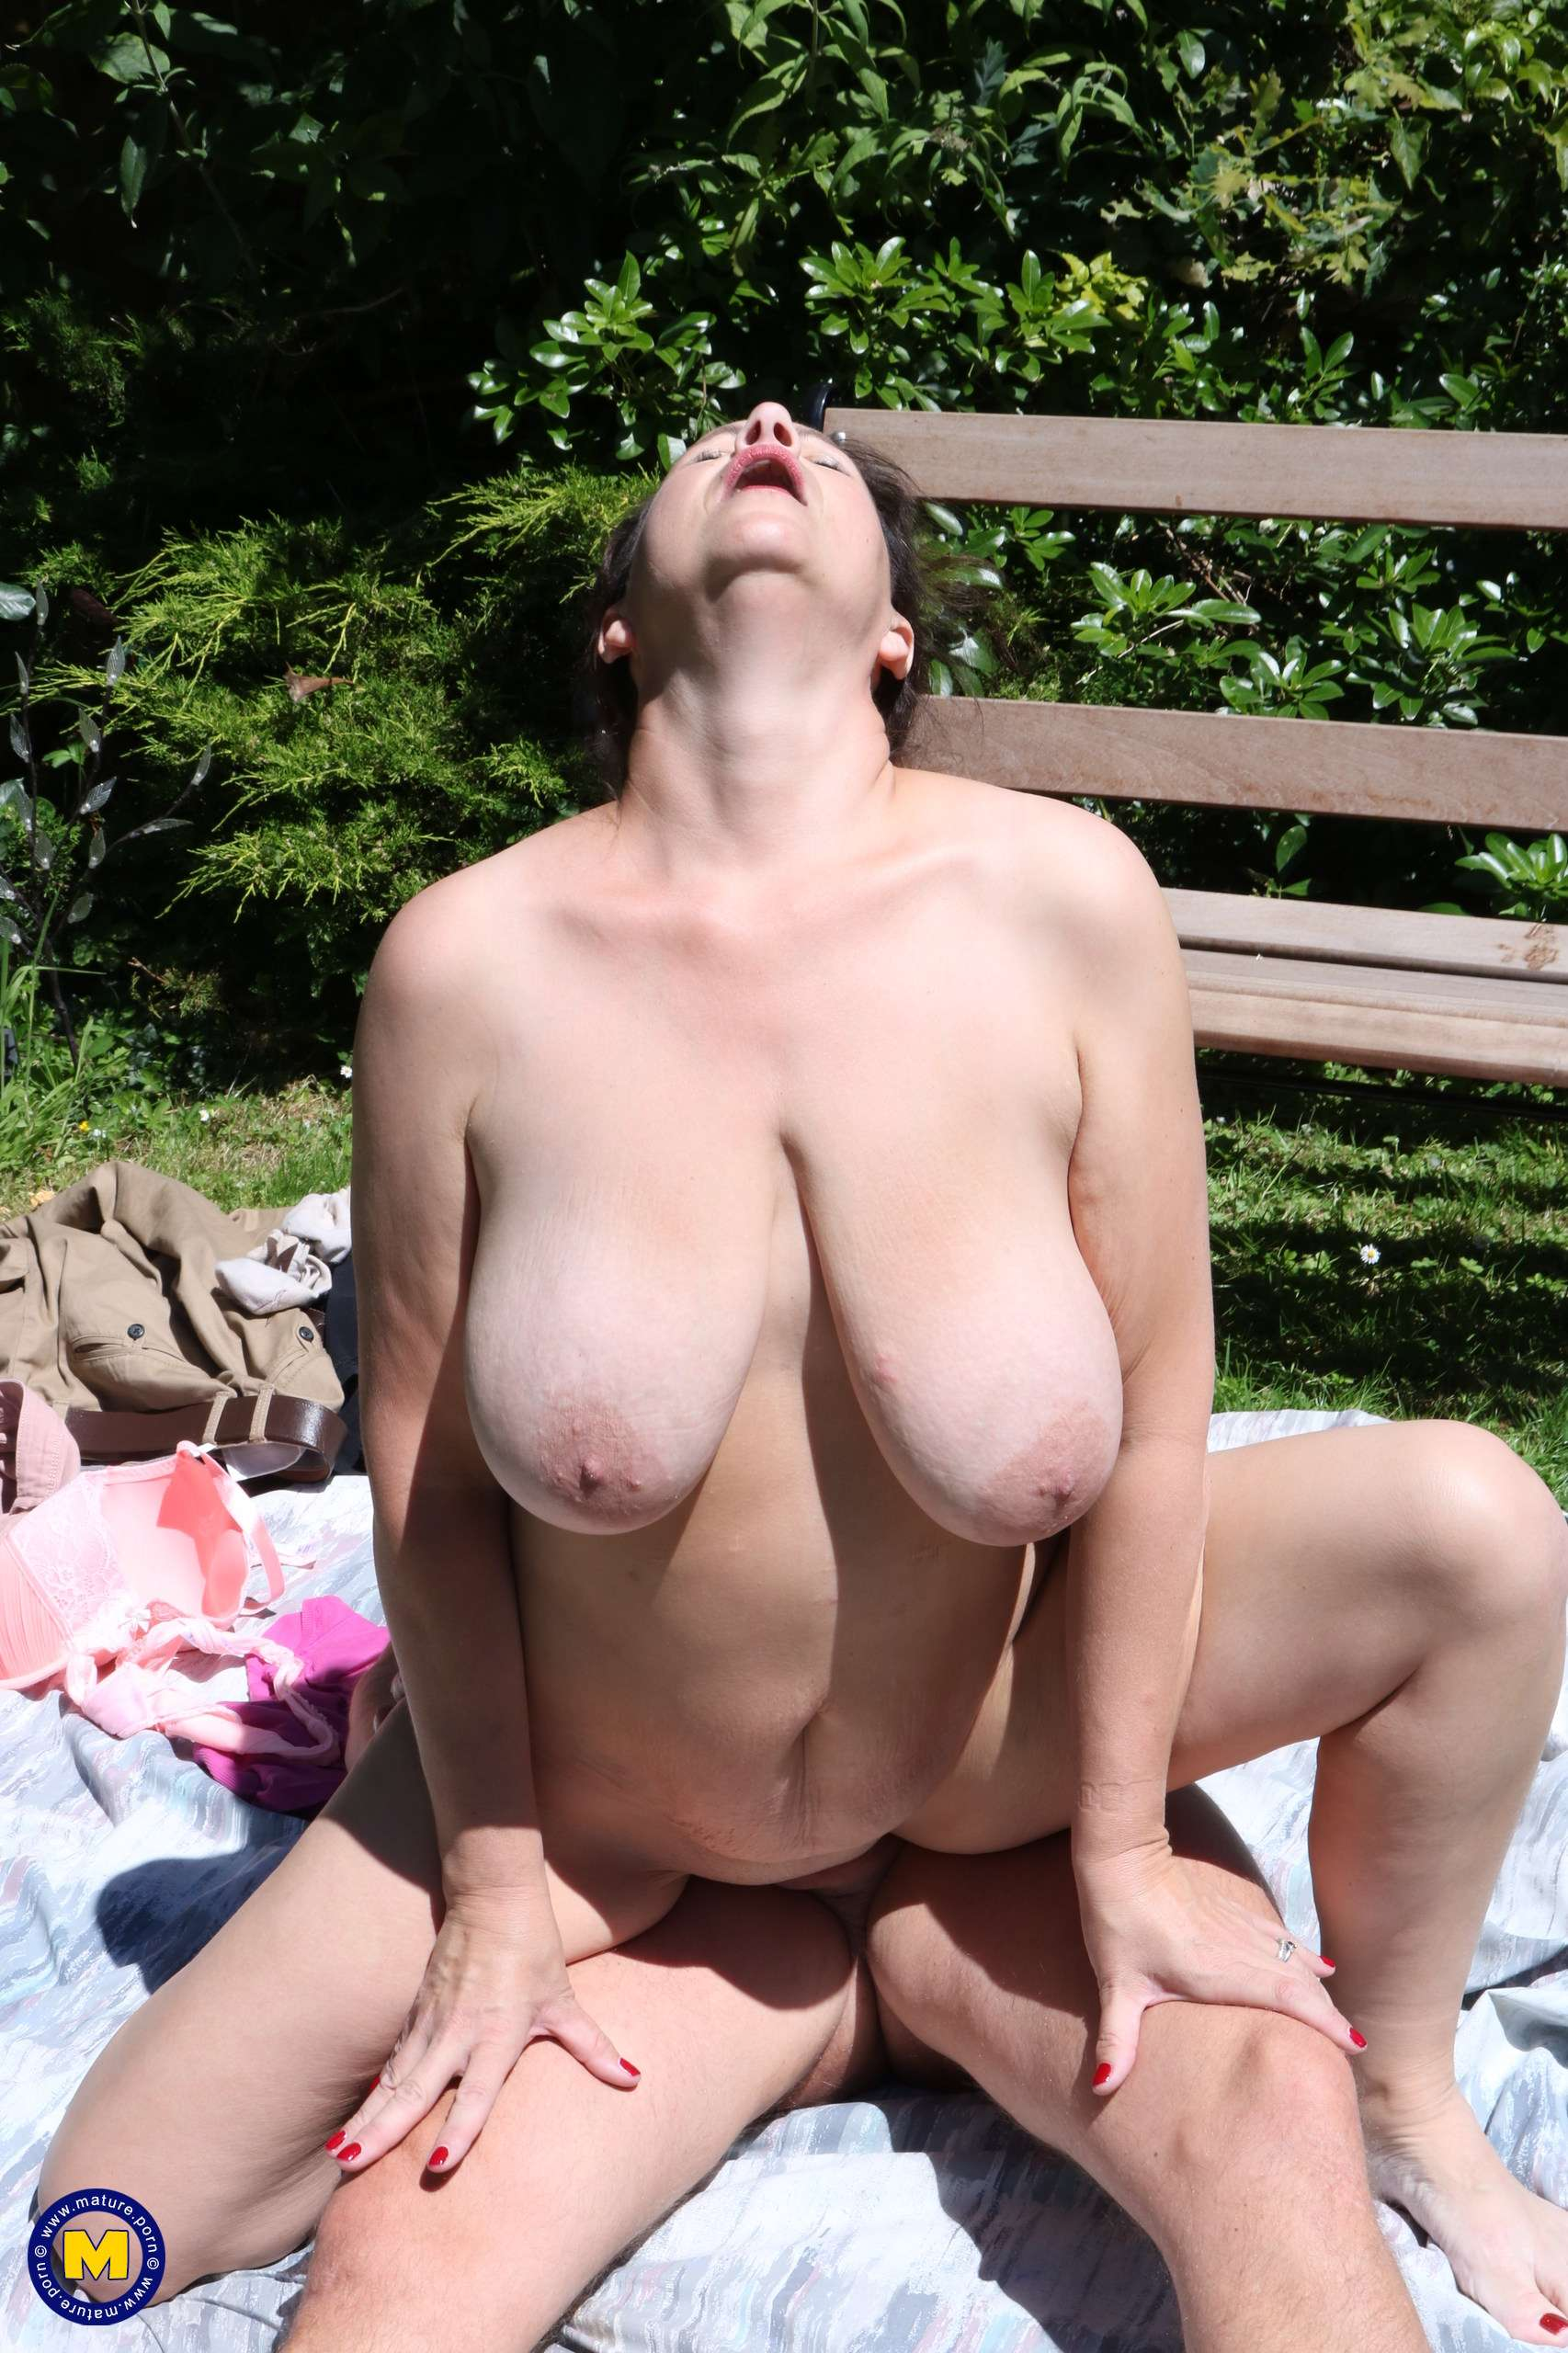 Big breasted Eva Jayne having fun in the garden